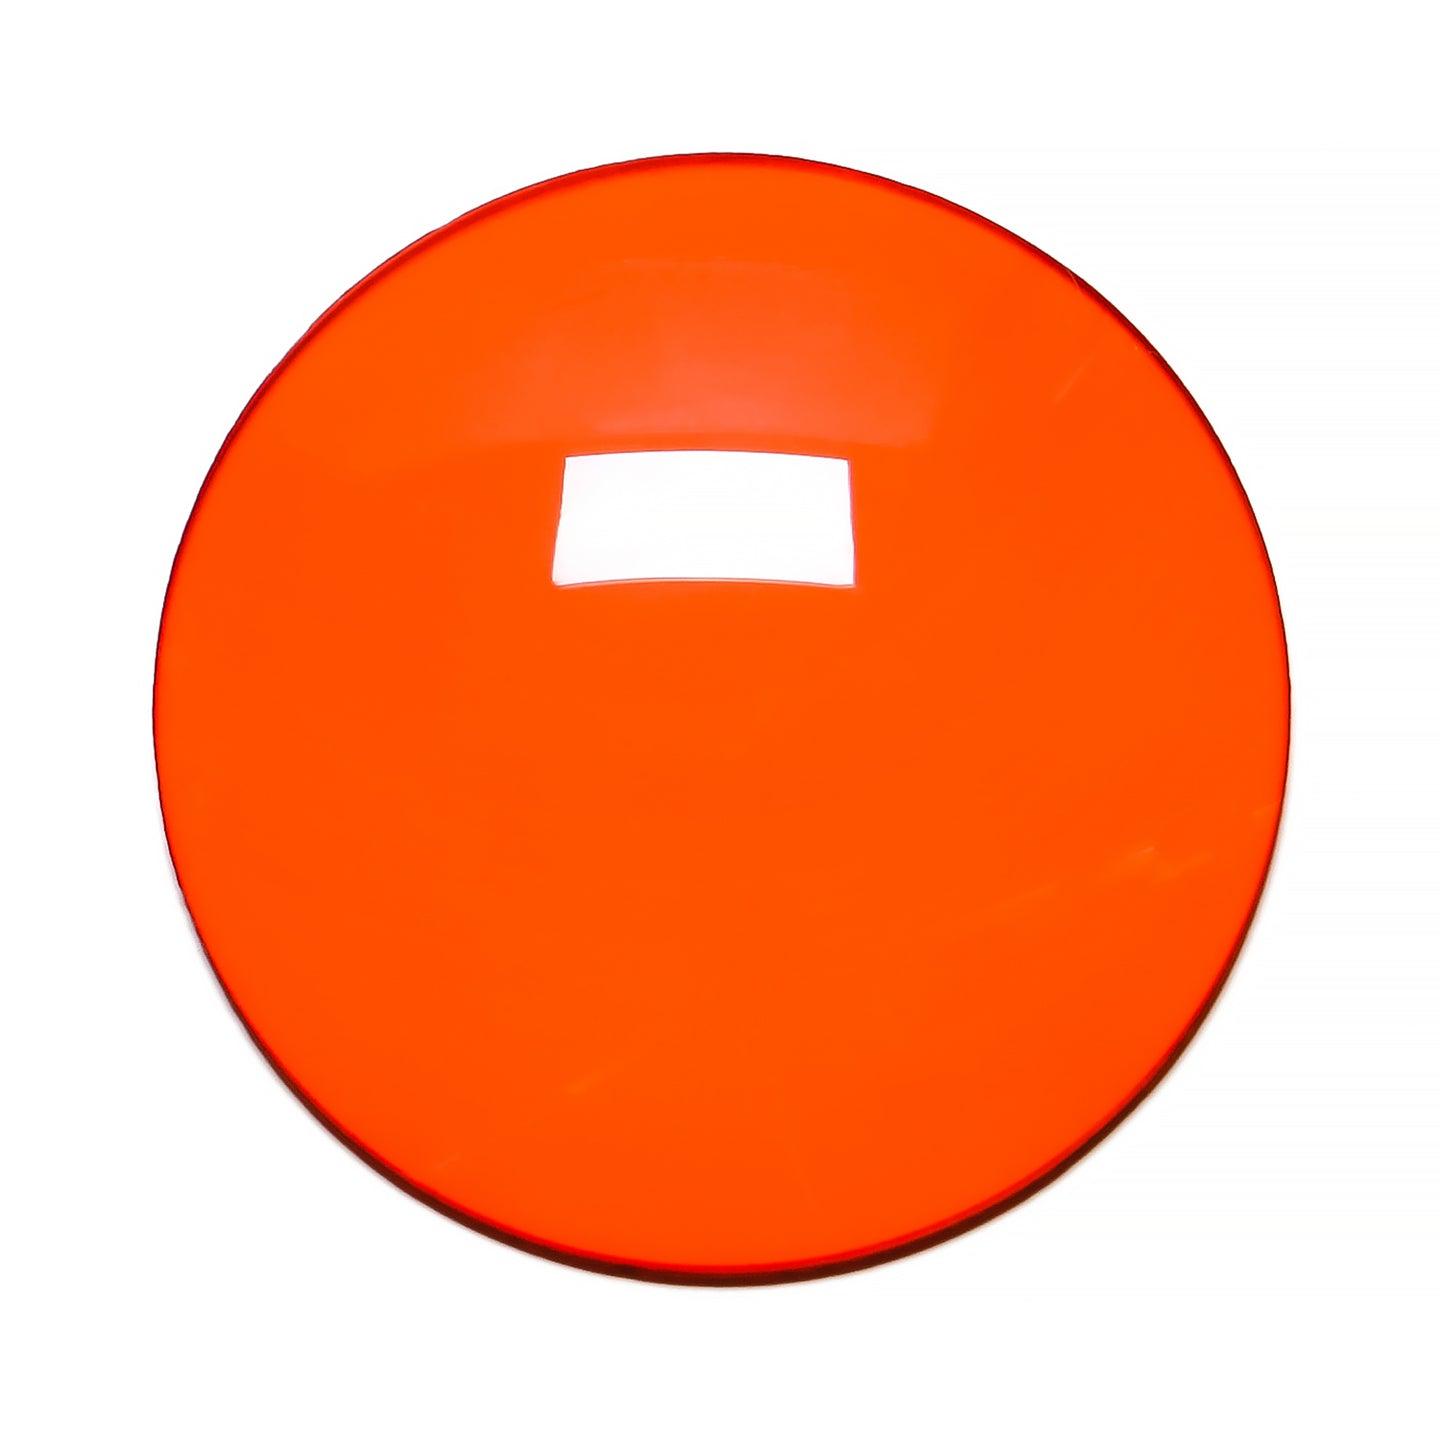 008 - Orange Solid Regular Curve Lens